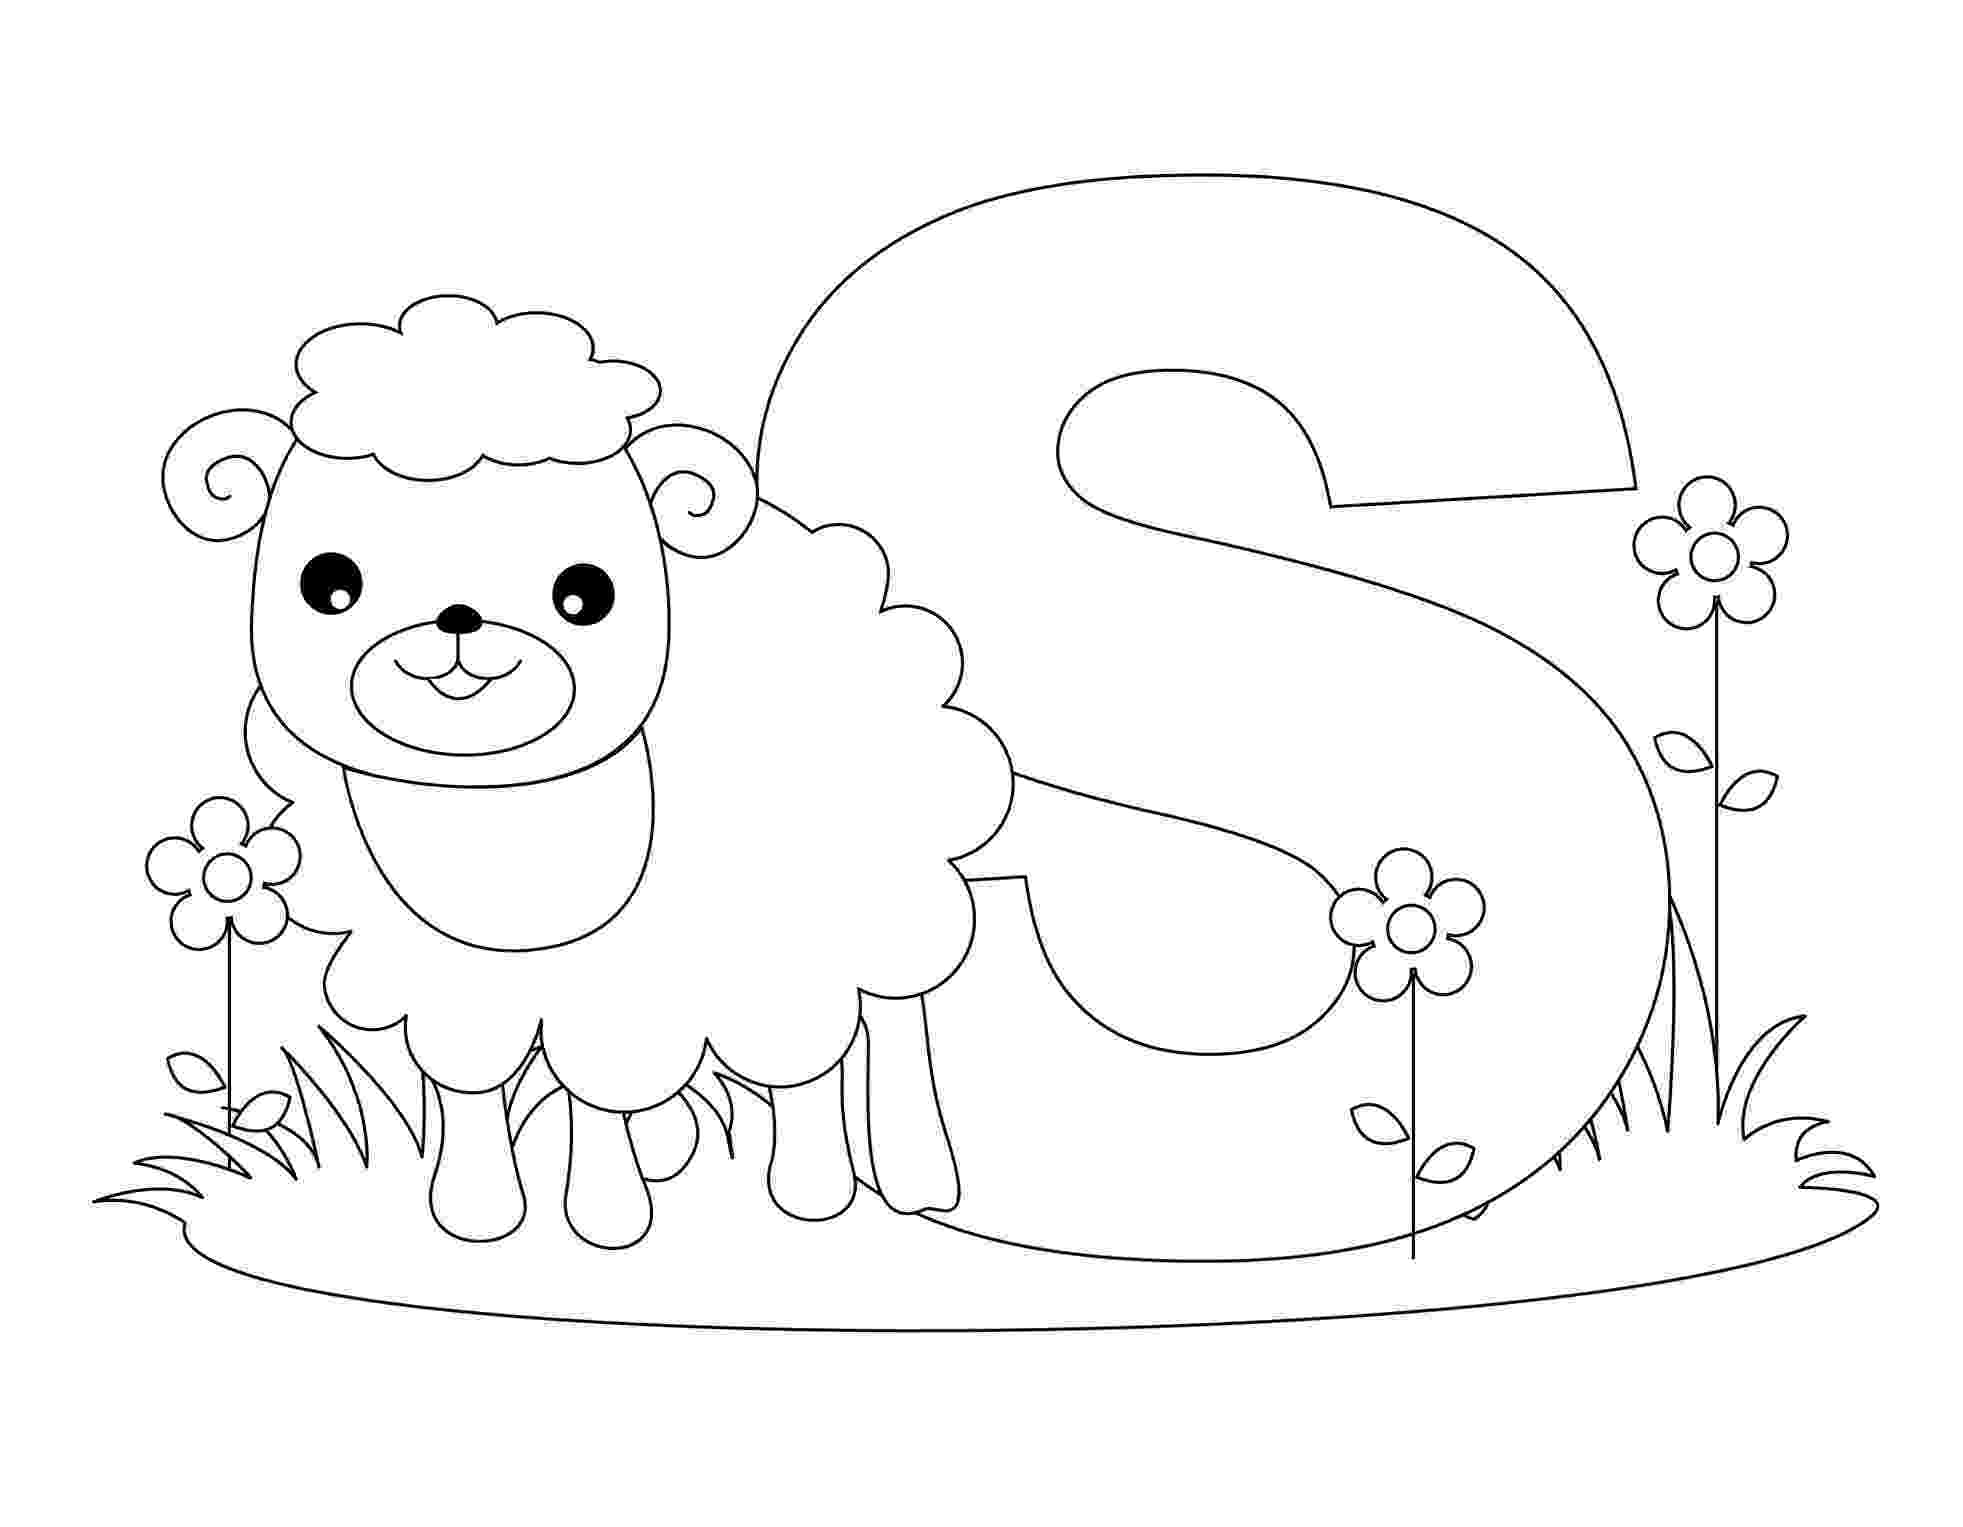 childrens colouring pages alphabet free printable alphabet coloring pages for kids best childrens alphabet pages colouring 1 1